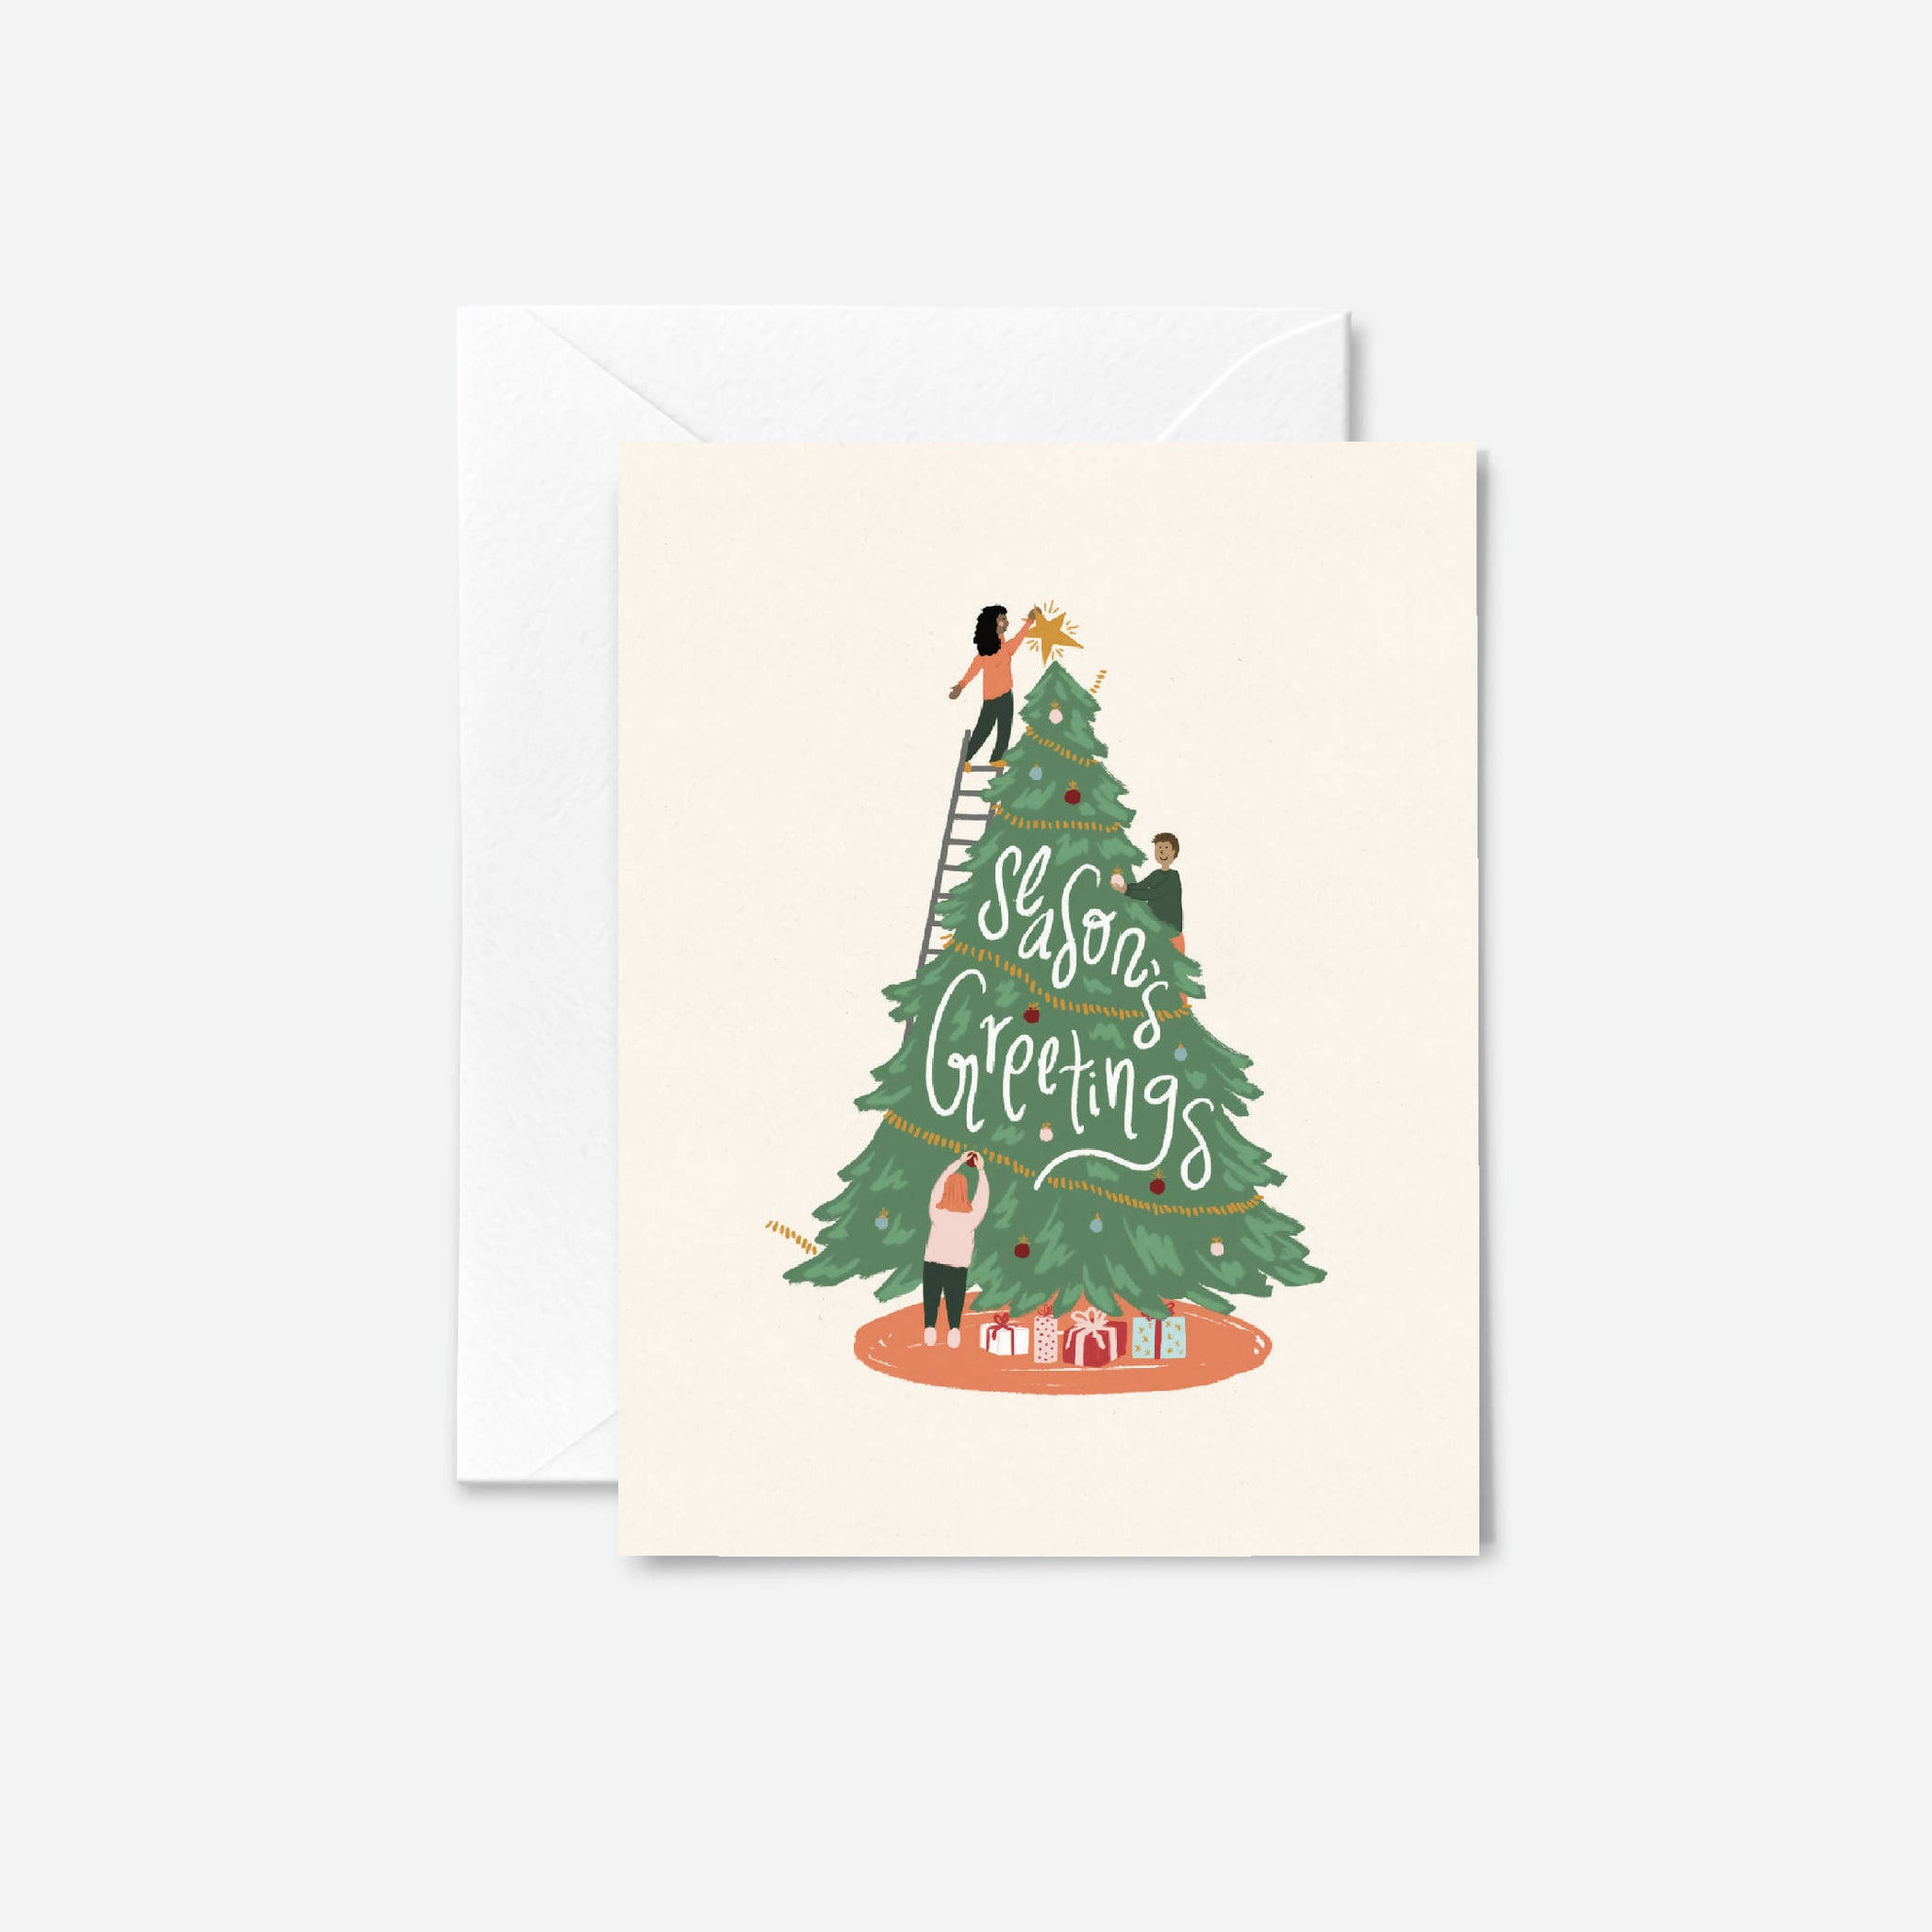 Tree Trimming Christmas Card